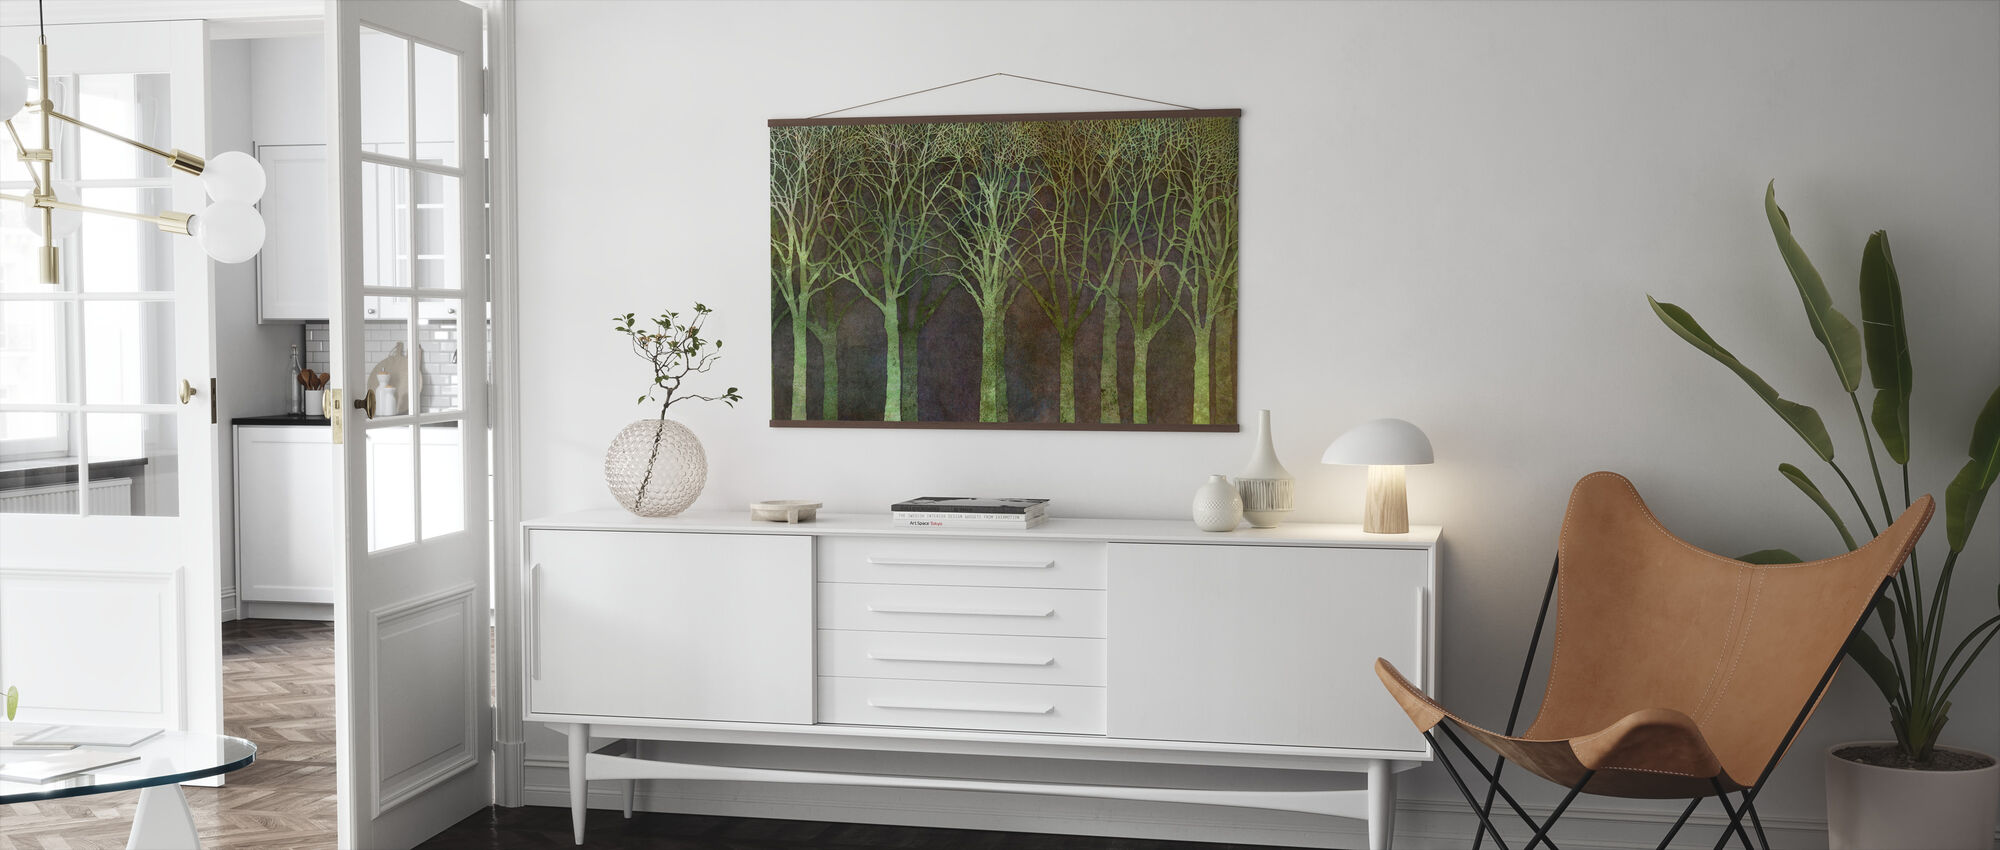 Birch Grove Night Green - Poster - Living Room